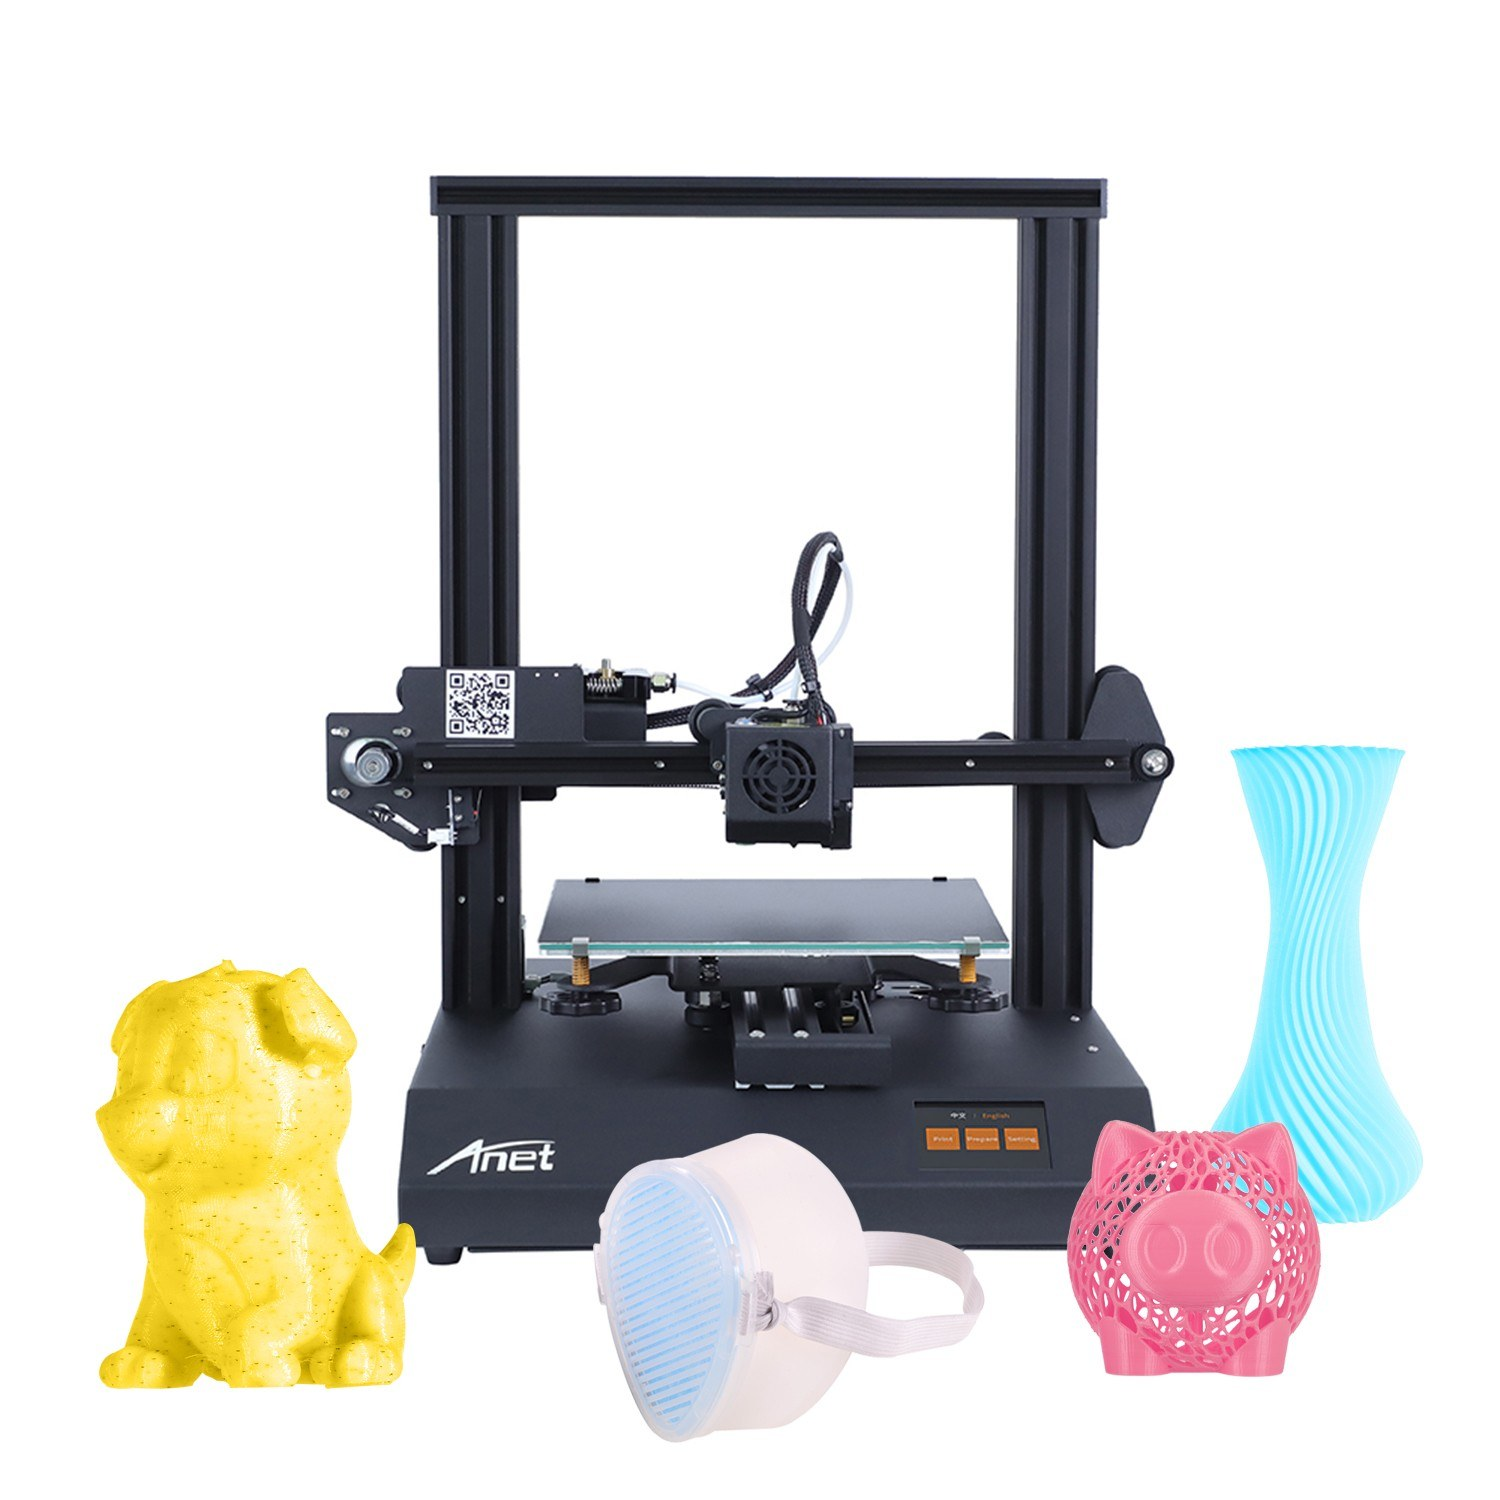 tomtop.com - 79% OFF Anet ET4 Pro 3D Printer High Precision, Limited Offers $189.99